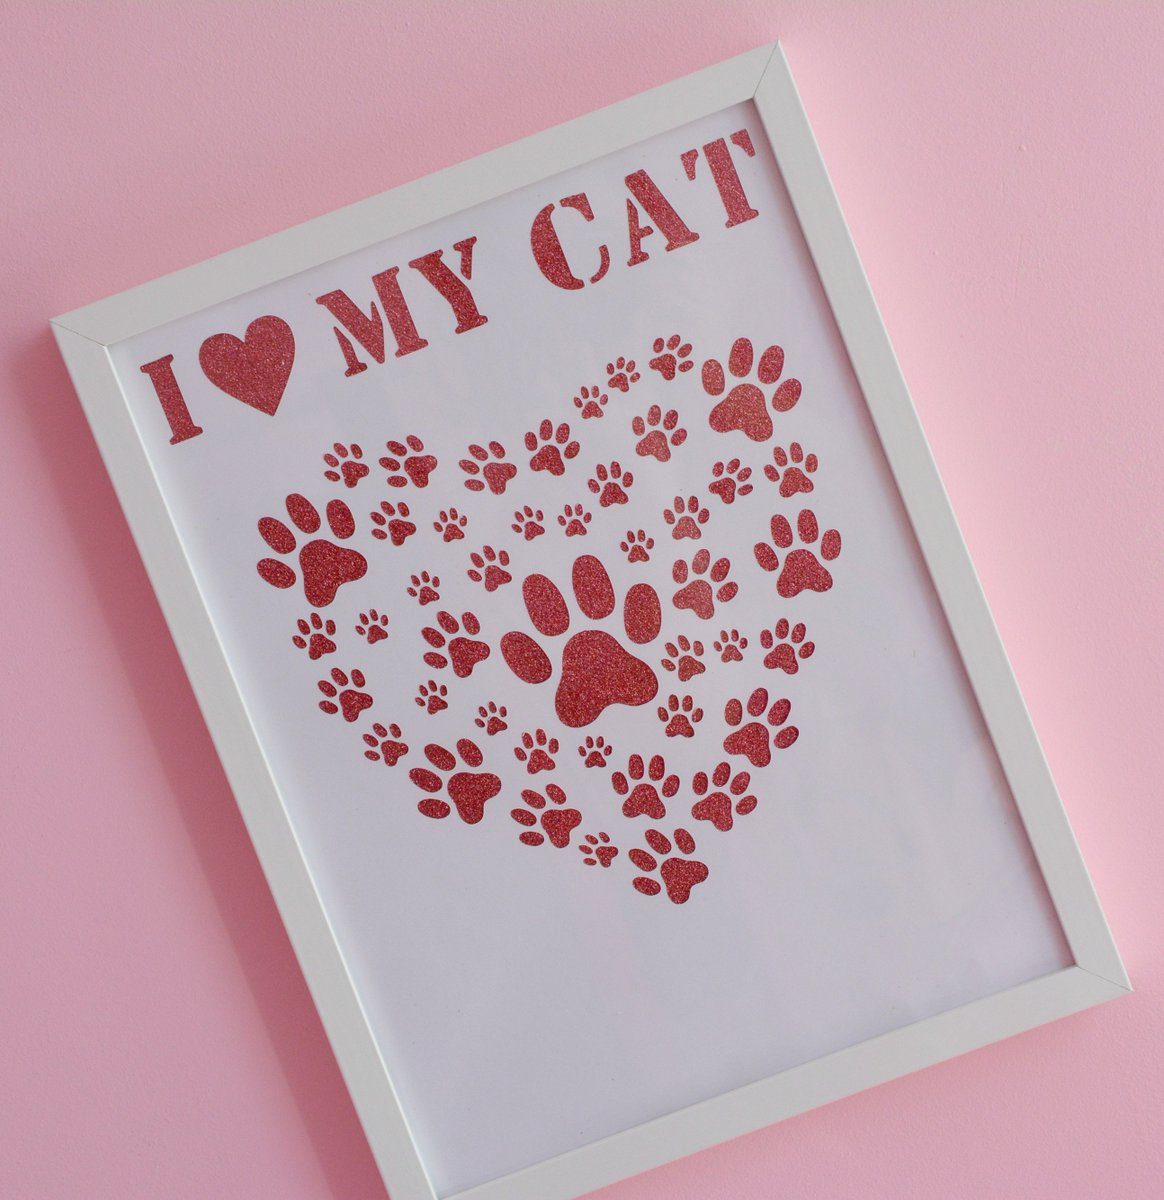 Butterfly Creations On Twitter I Love My Cat Frame Frame